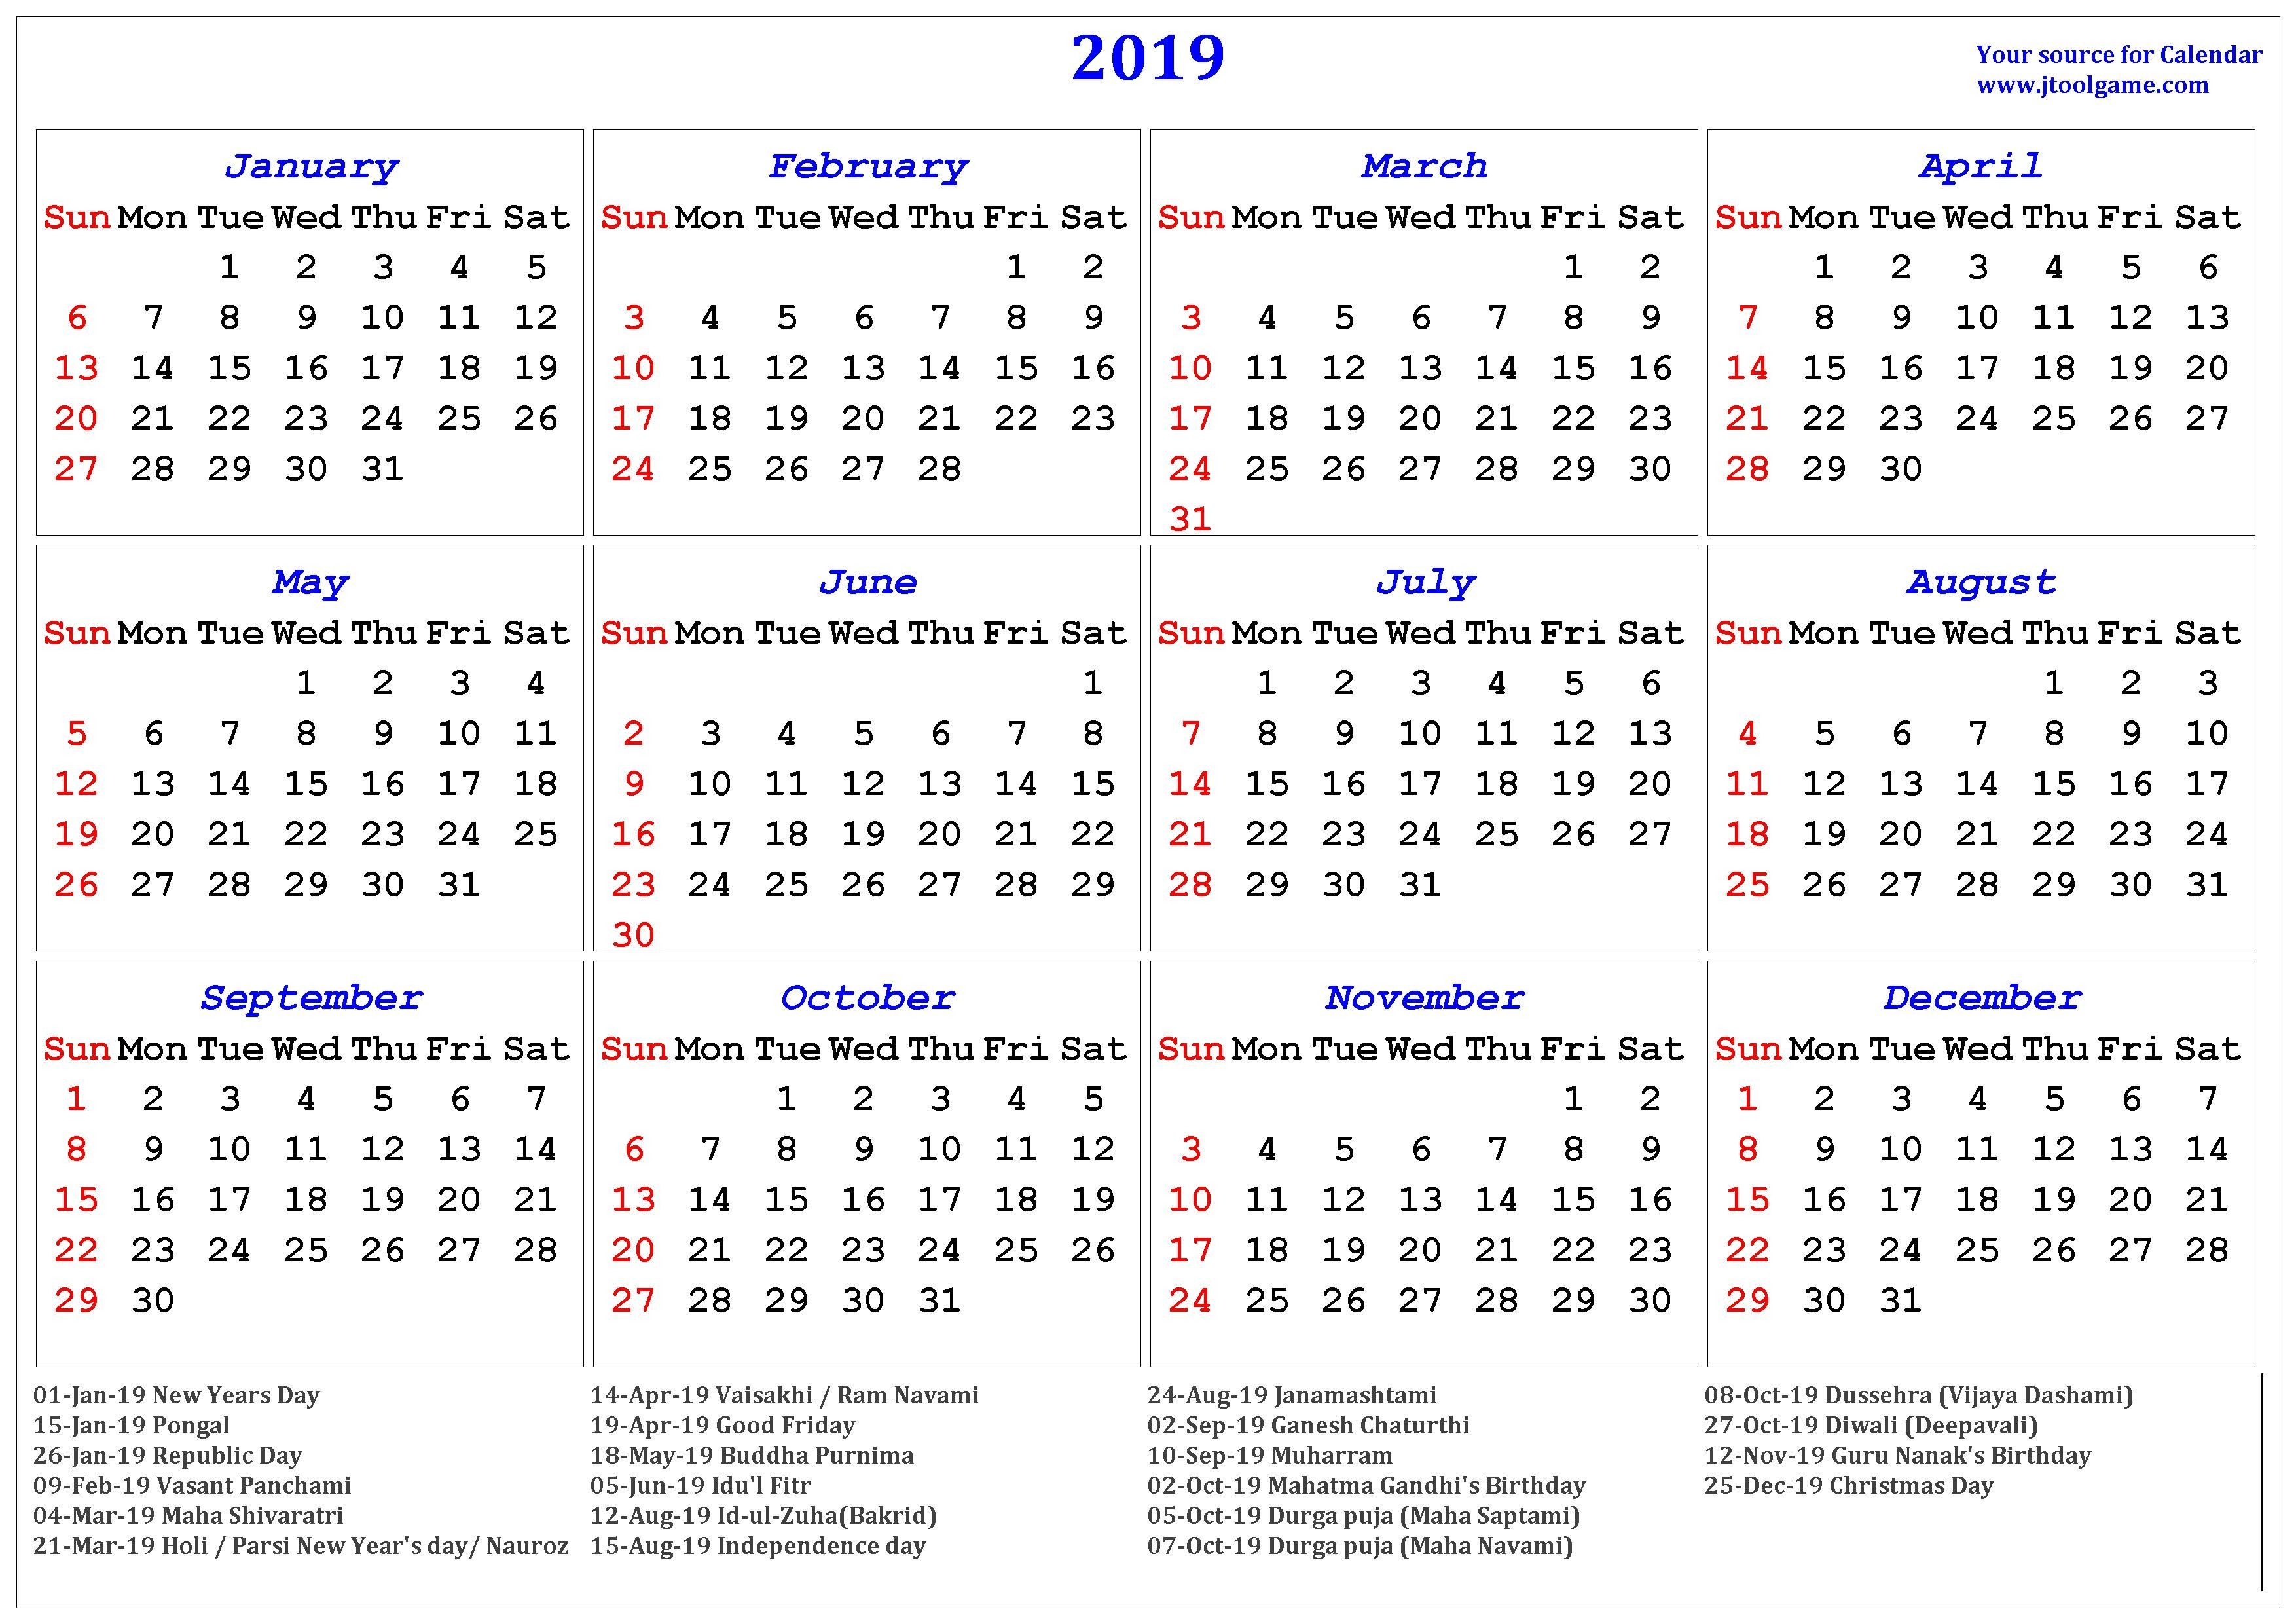 March Calendar 19 Más Actual Calendar 2019 Holidays India Of March Calendar 19 Más Recientes Tv News for 2019 Calendar January February March Calendar Online 2019